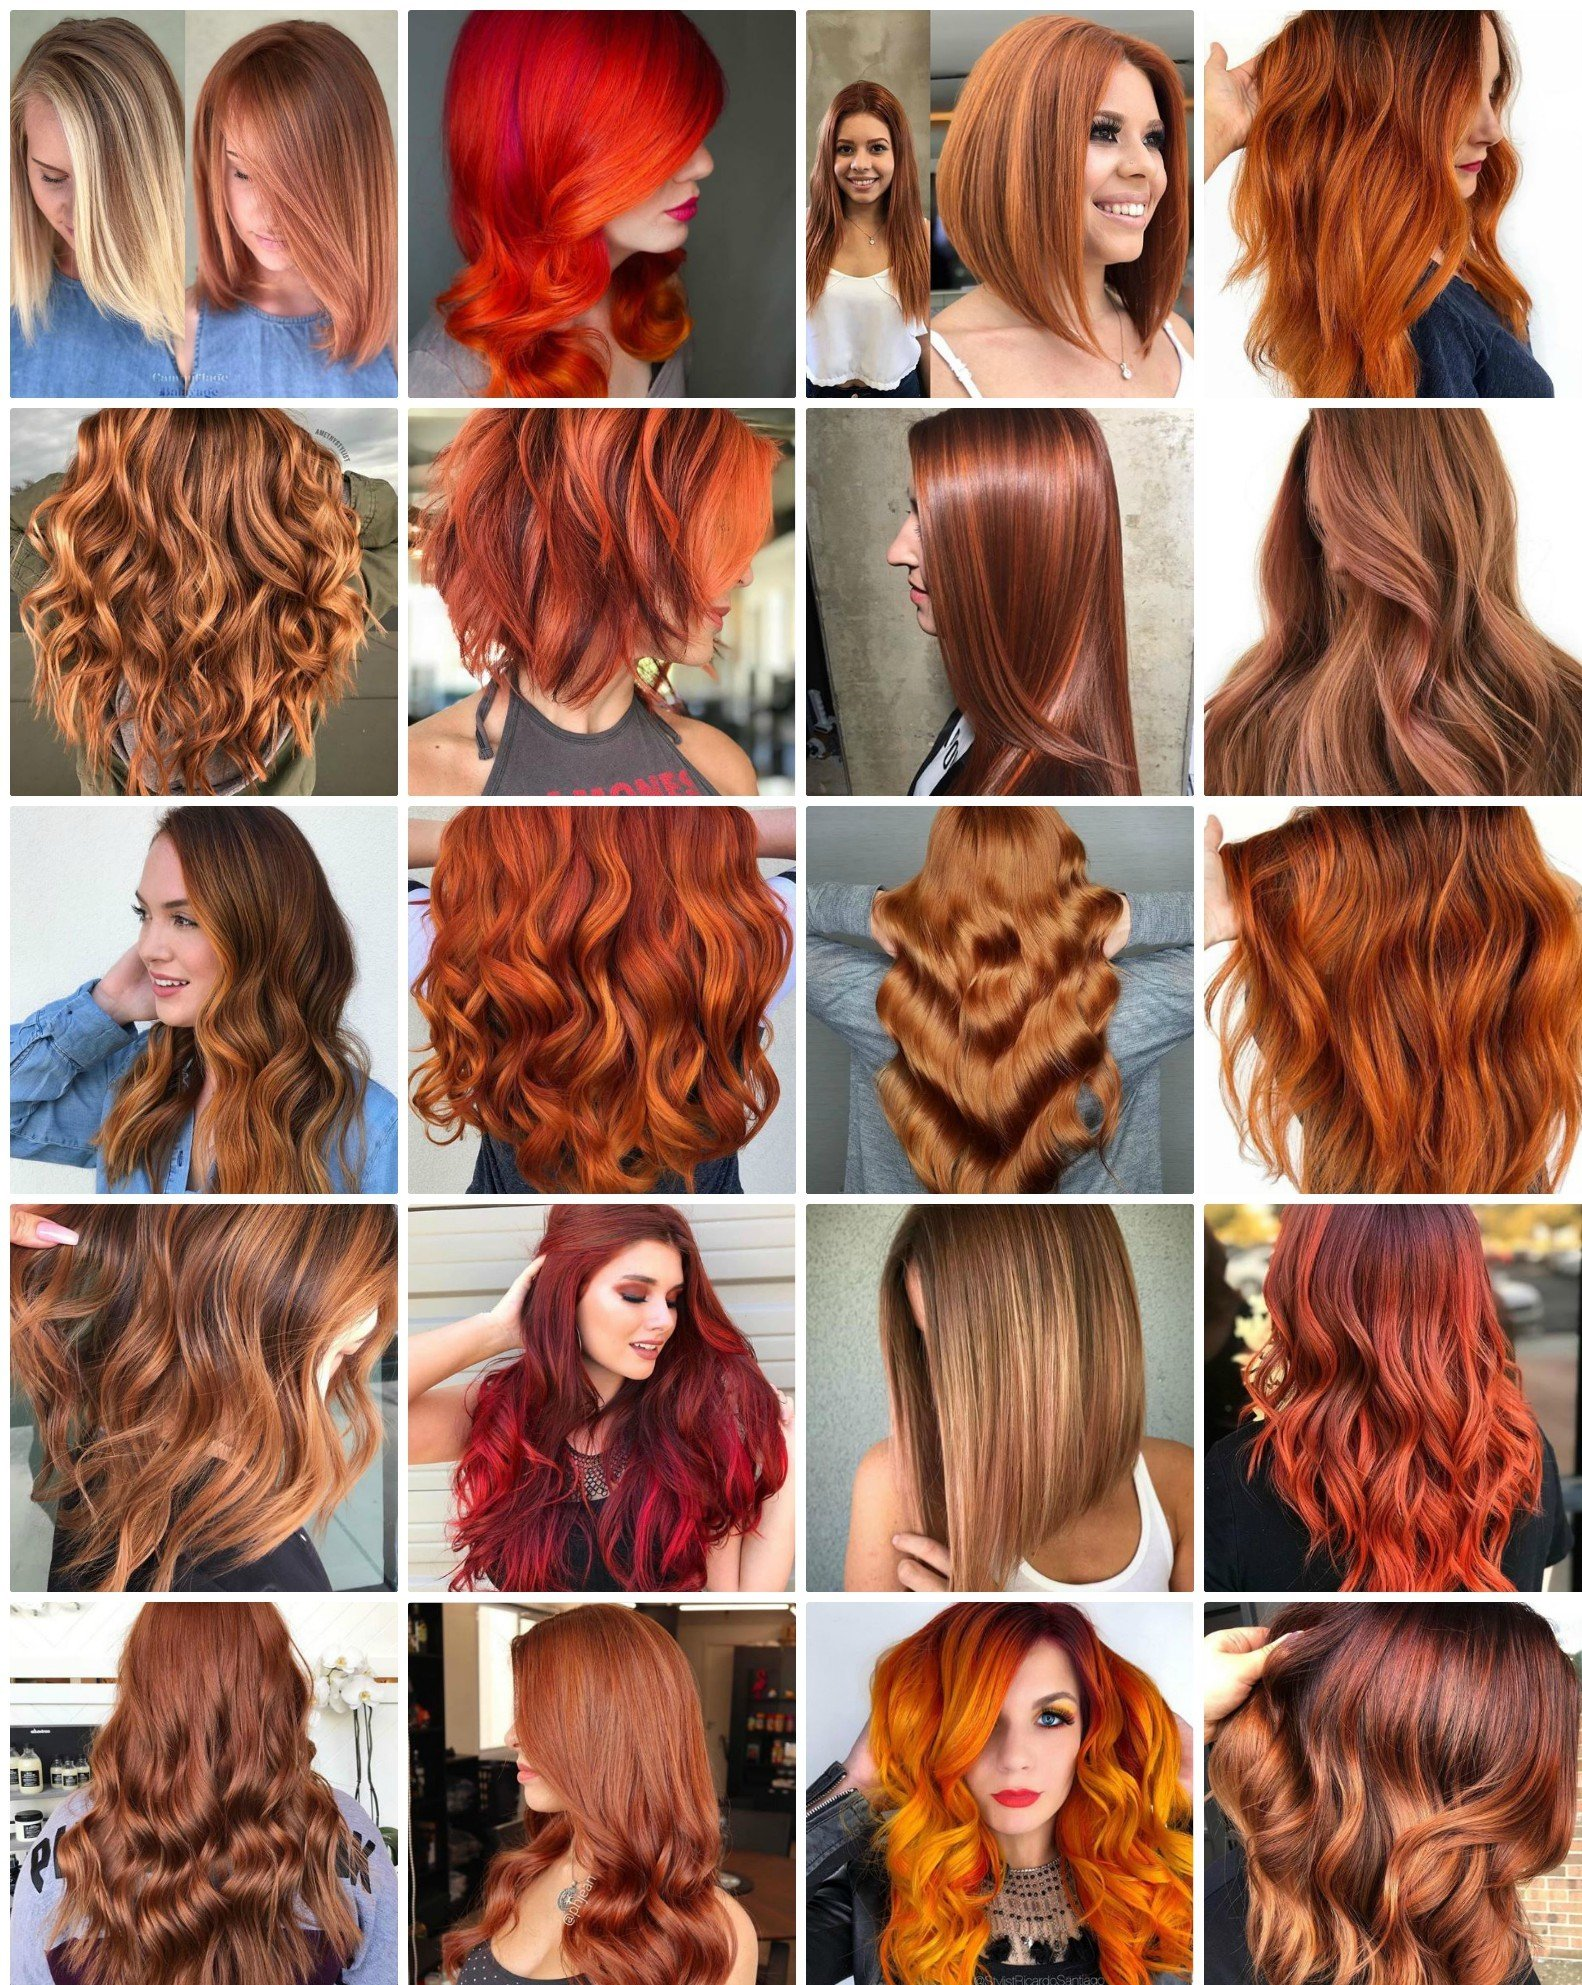 20 Red-Hot Hair Colors and Styles